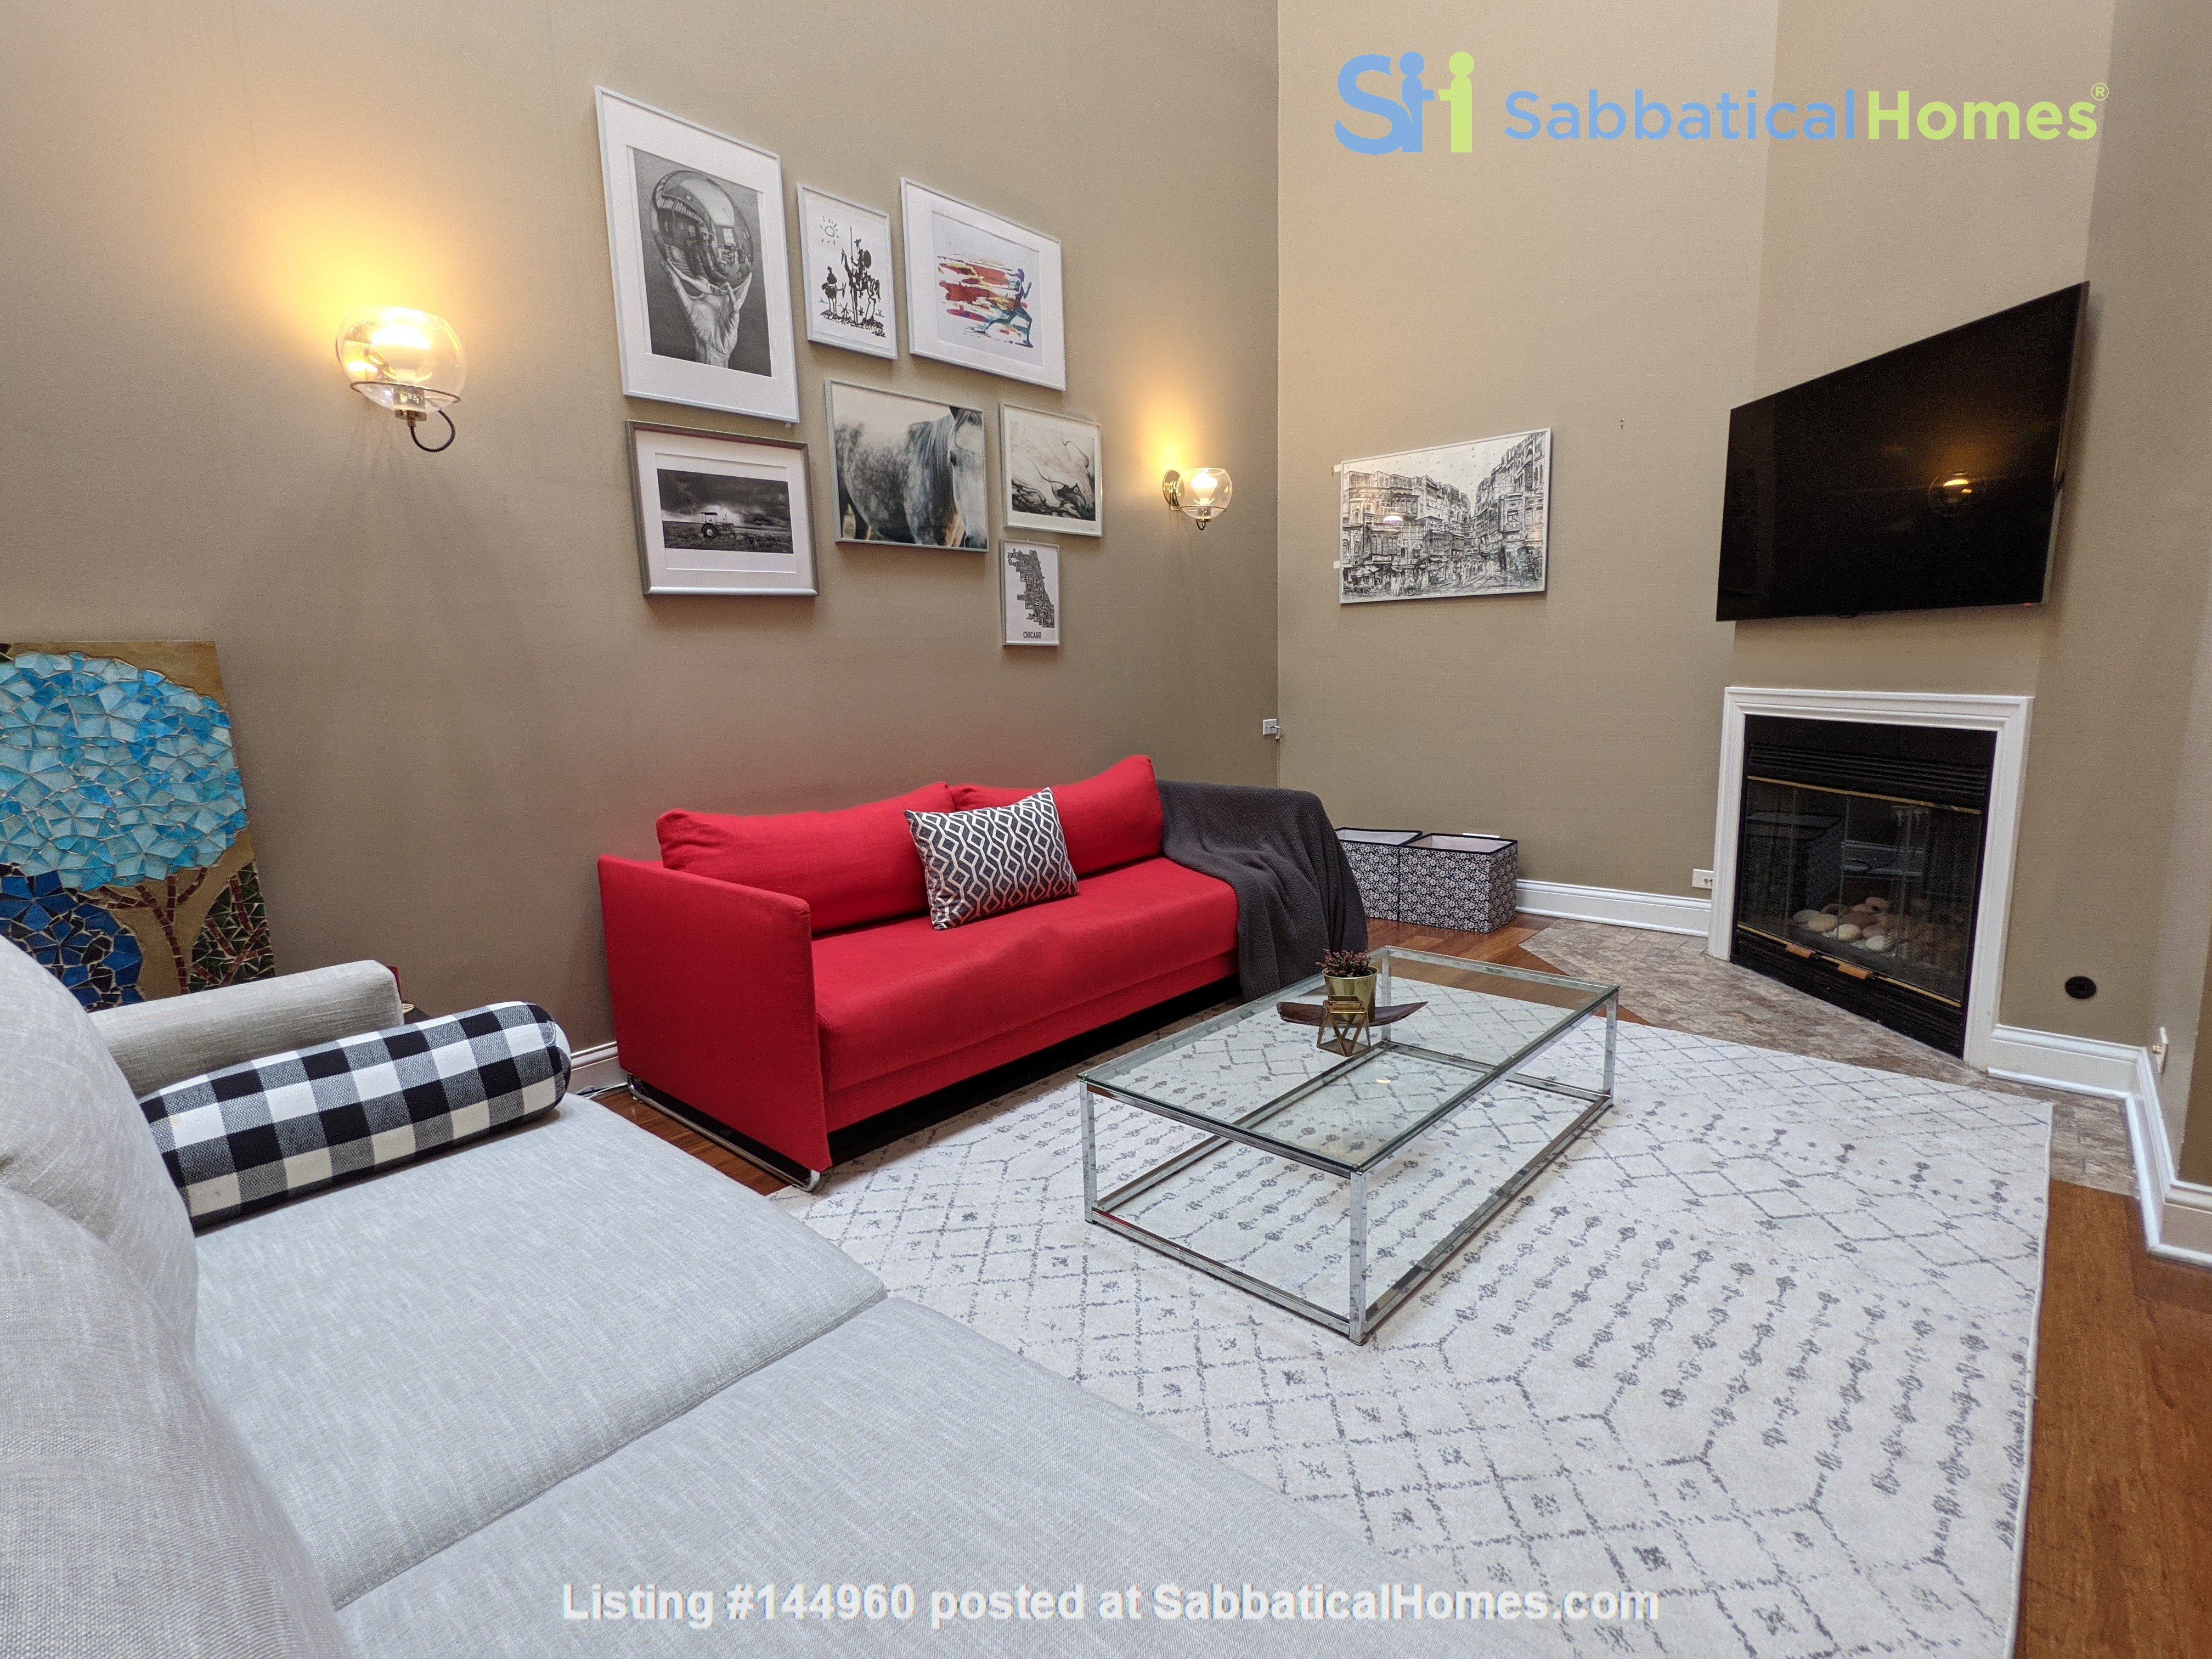 Spacious, fully furnished 3 bd/2.5 ba townhome in Lincoln Park Home Rental in Chicago, Illinois, United States 2